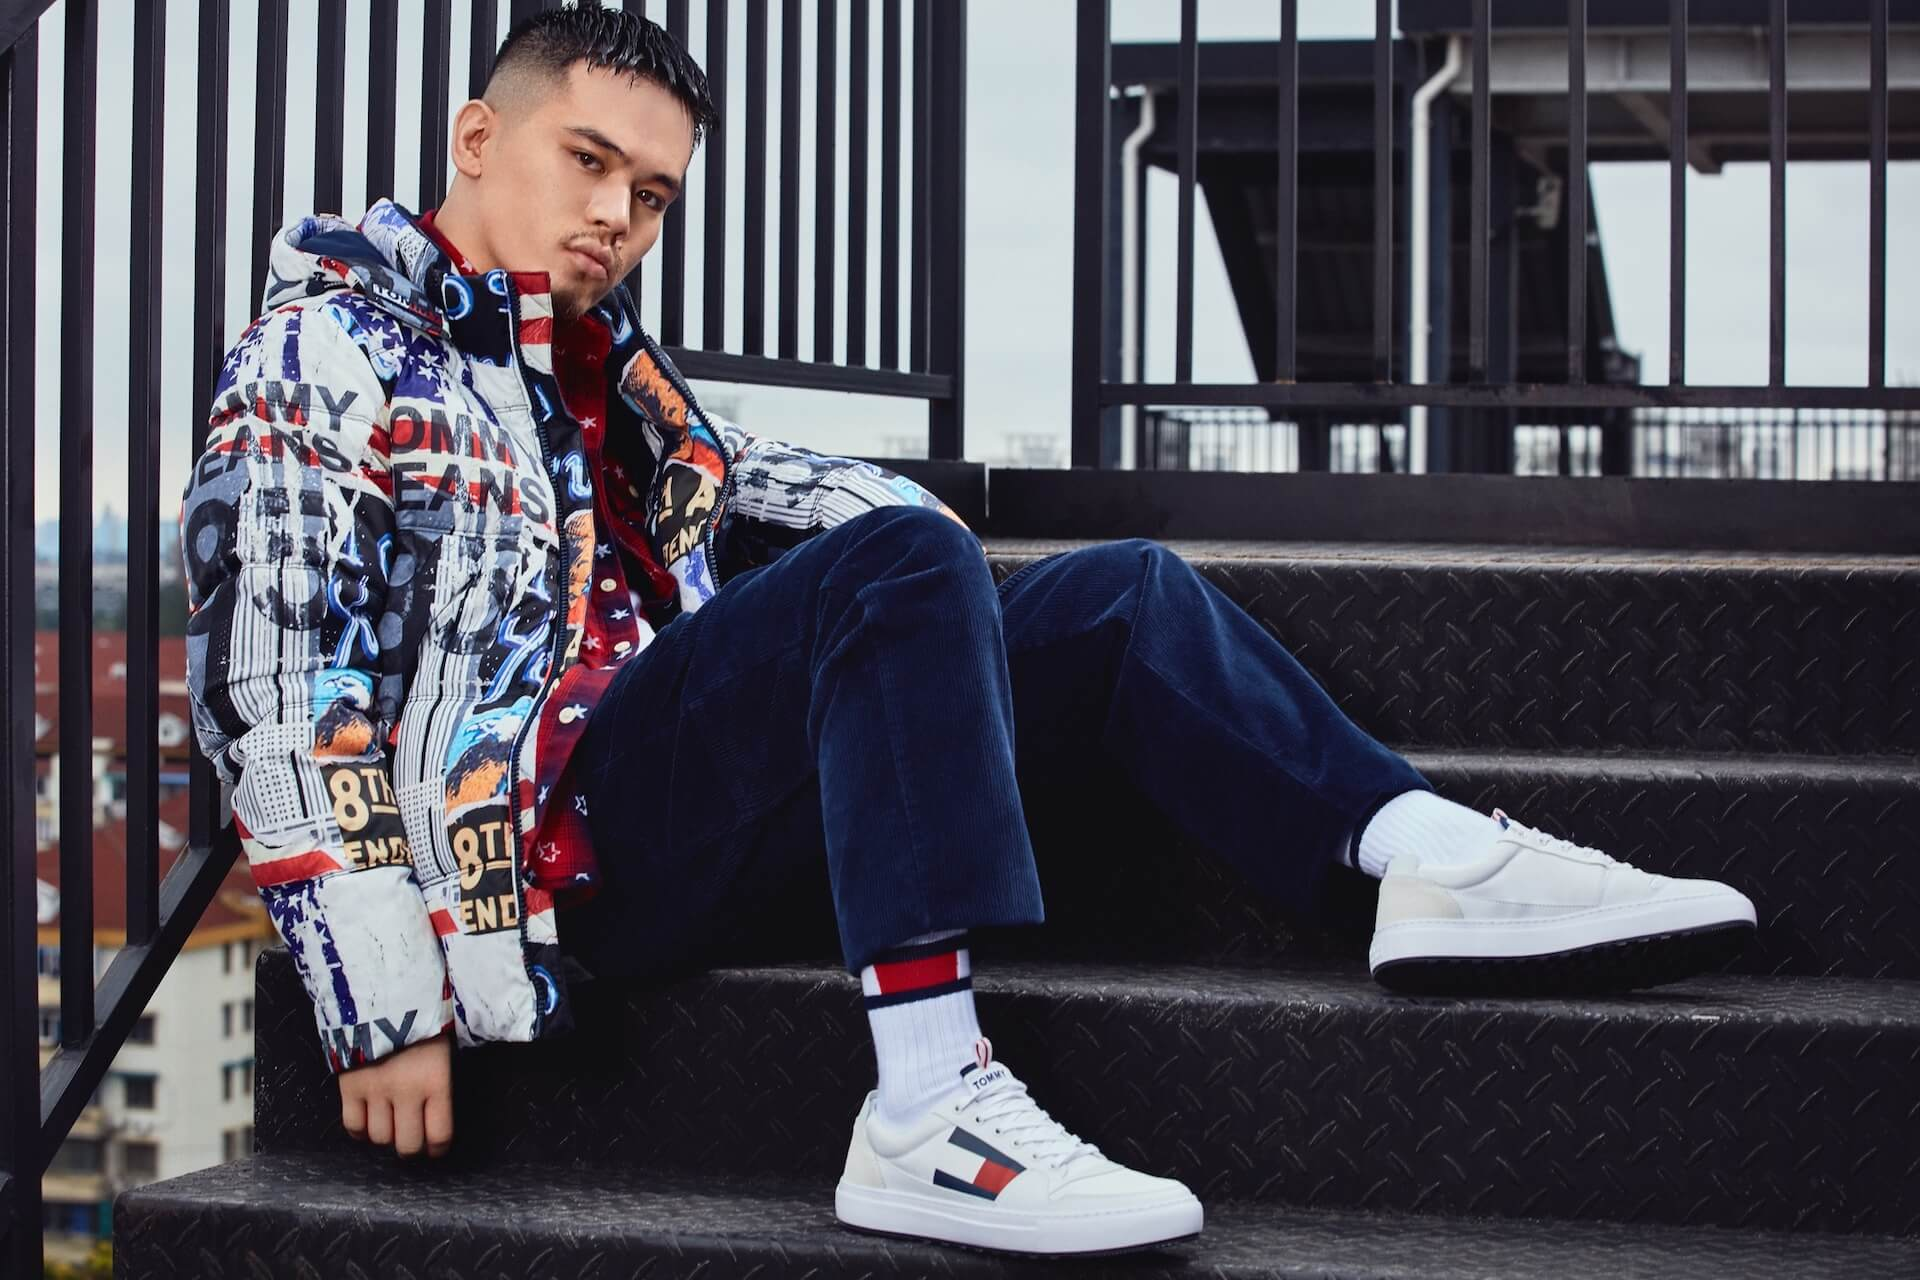 BAD HOP・T-Pablowや韓国人ラッパー・RAVIなどを起用したTOMMY JEANS 2019 Fall Collectionのビジュアルが公開 lifefashion191011_tommyjeans_6